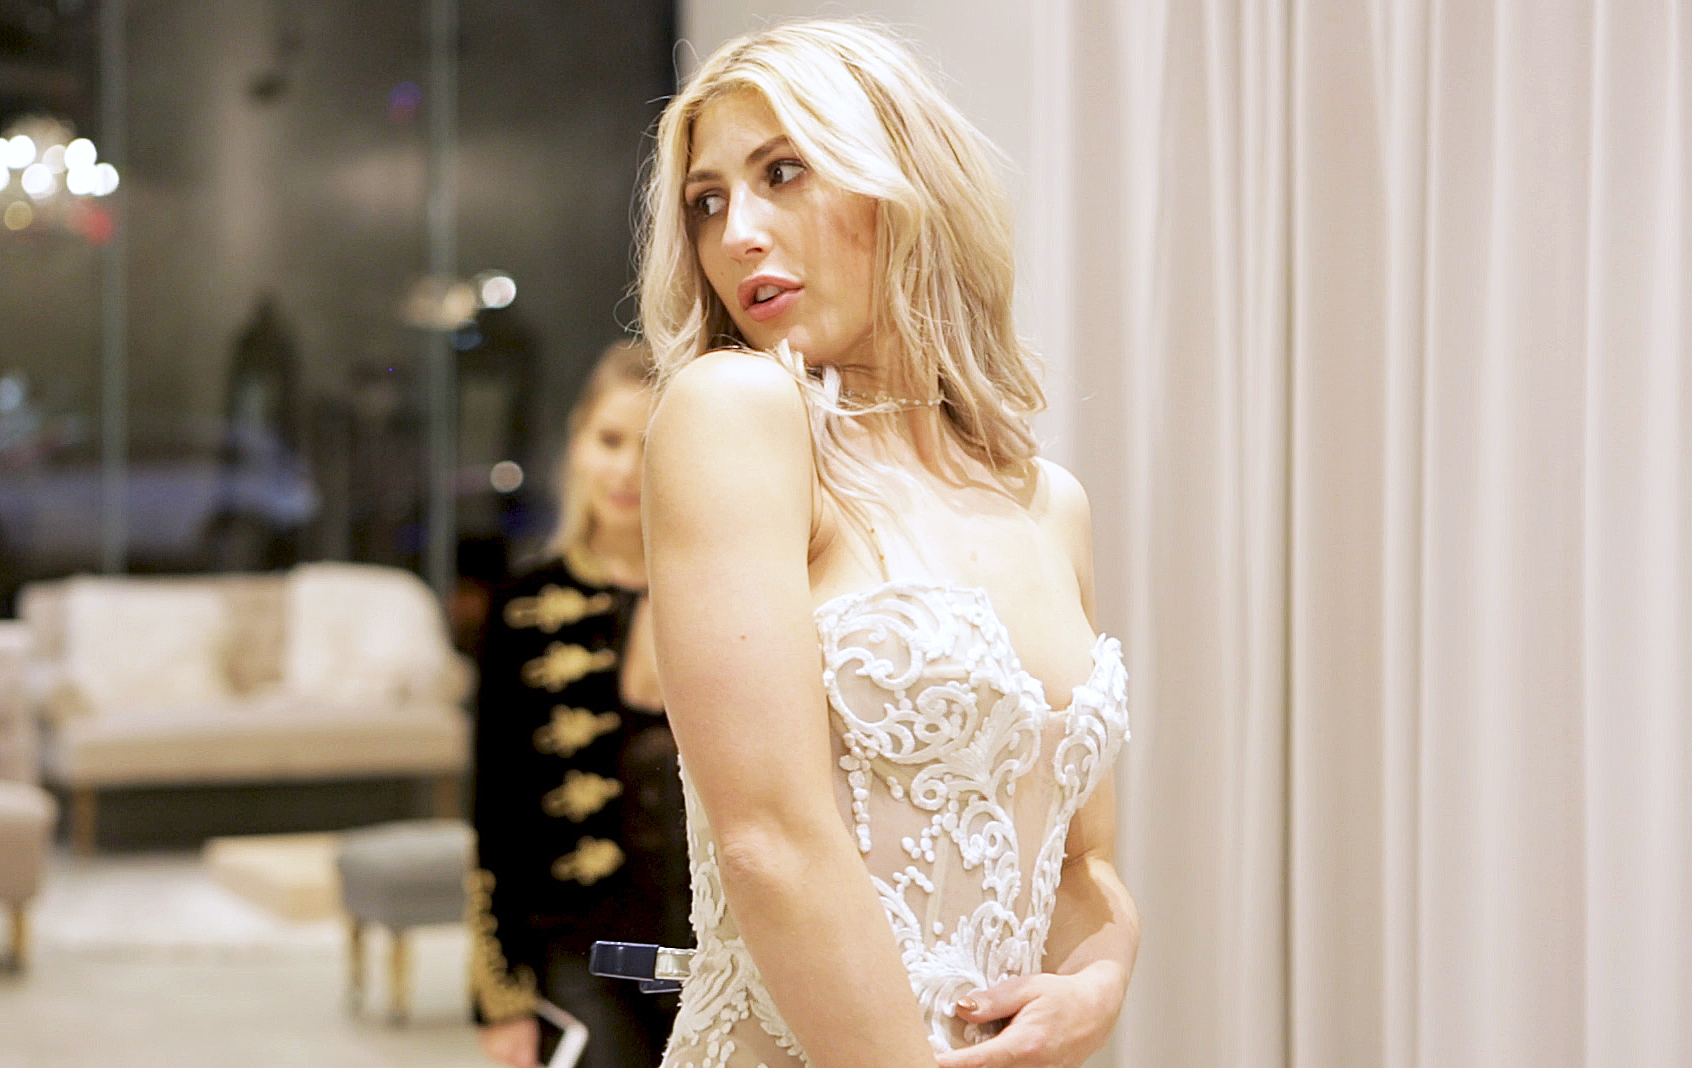 Dwts Pro Emma Slater Tries On Wedding Dresses Watch